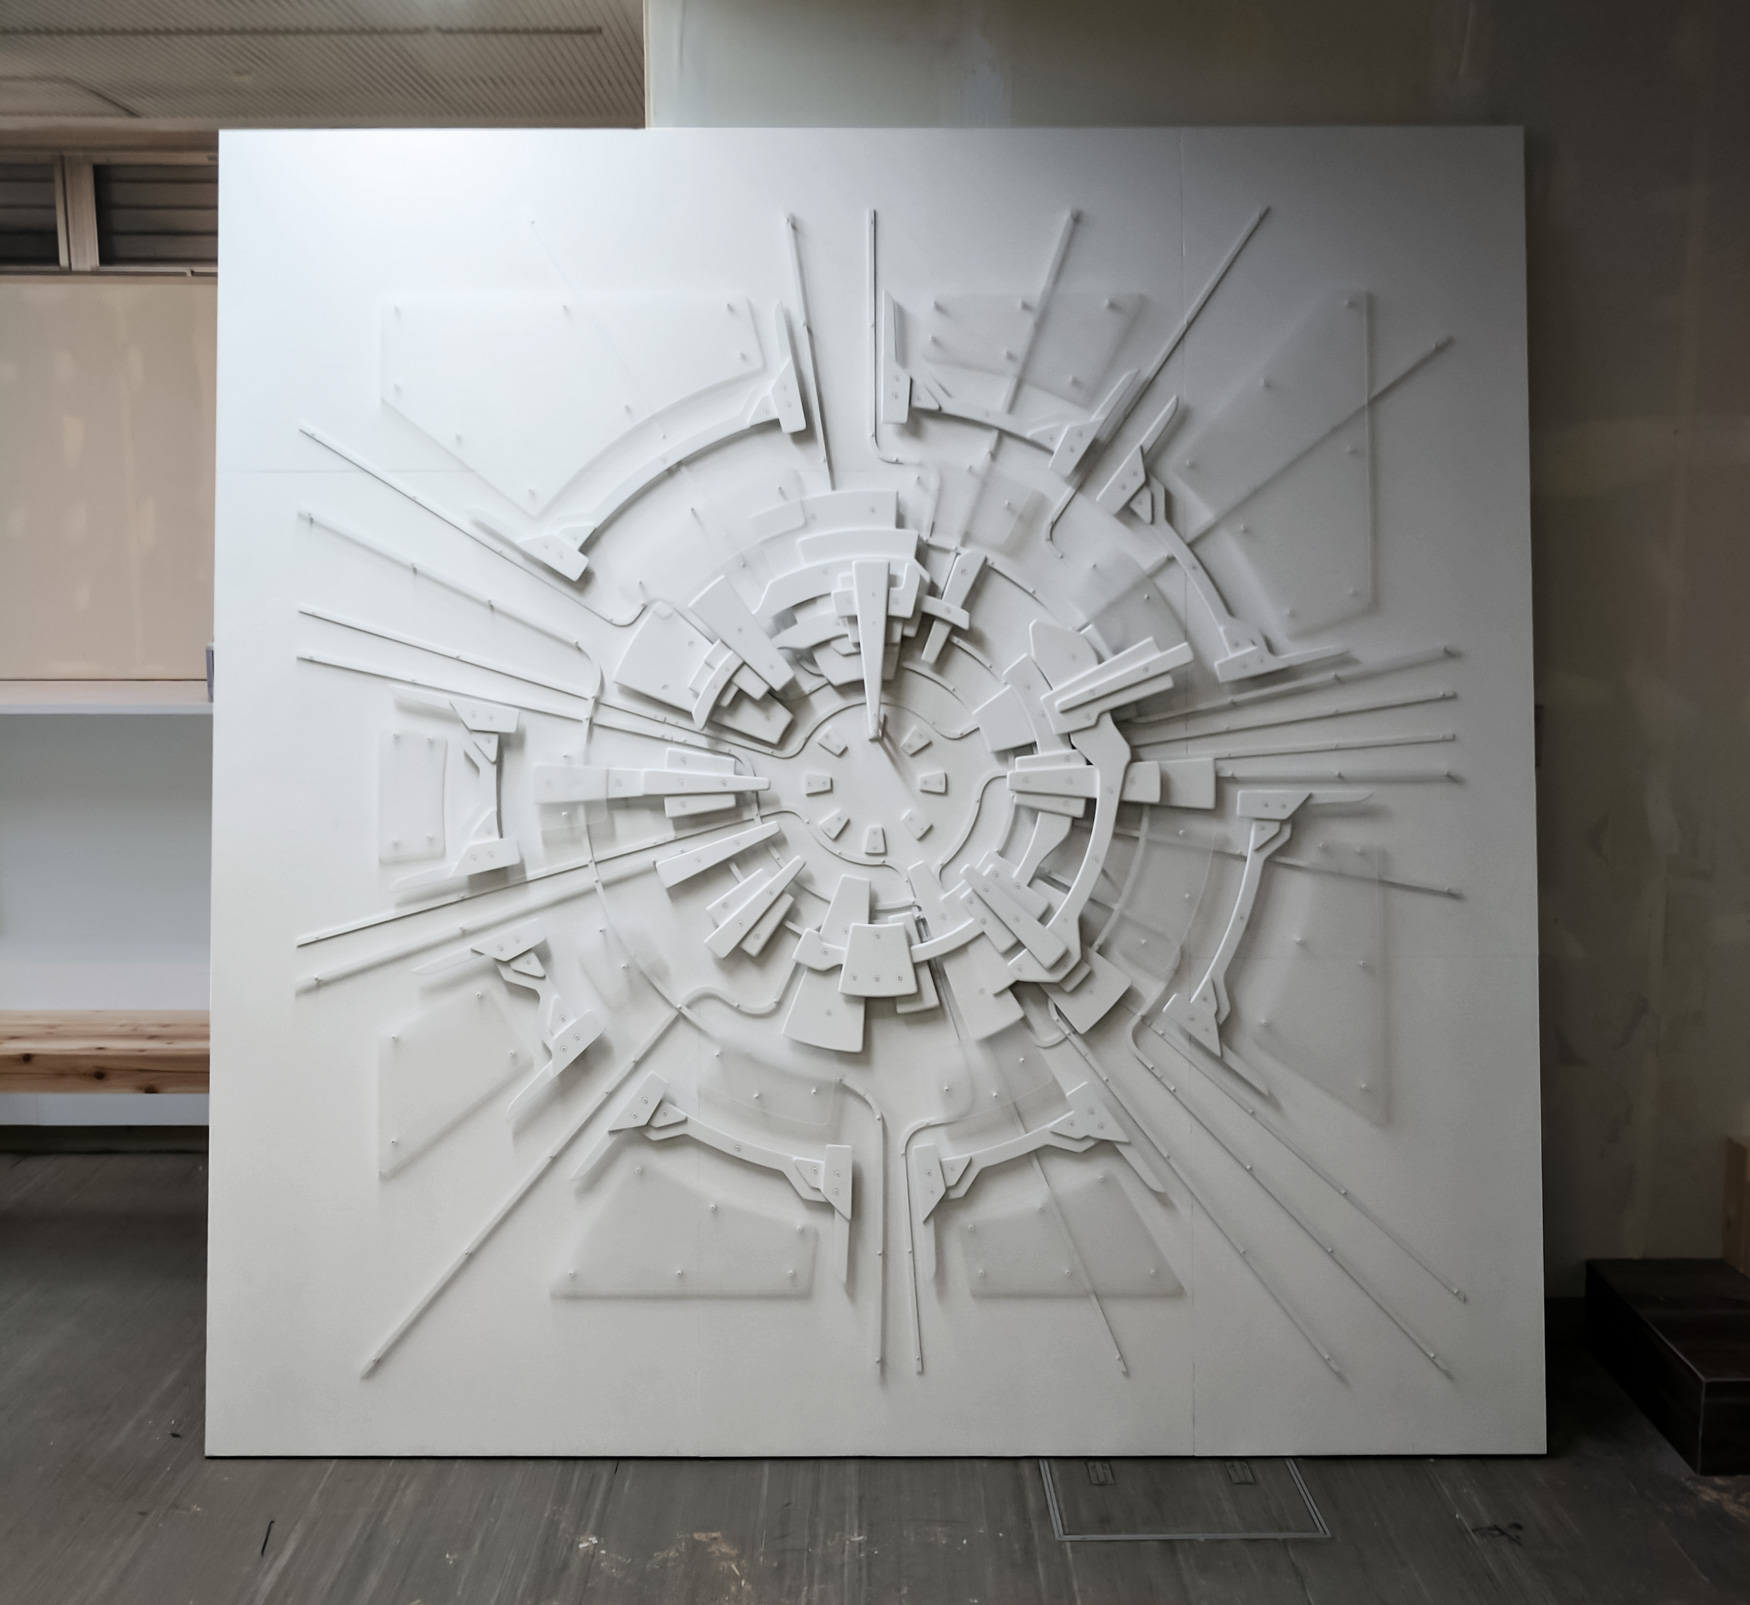 Standing 8ft square,   Base Pairs 01   is on display in the Chojamachi district of Nagoya, Japan